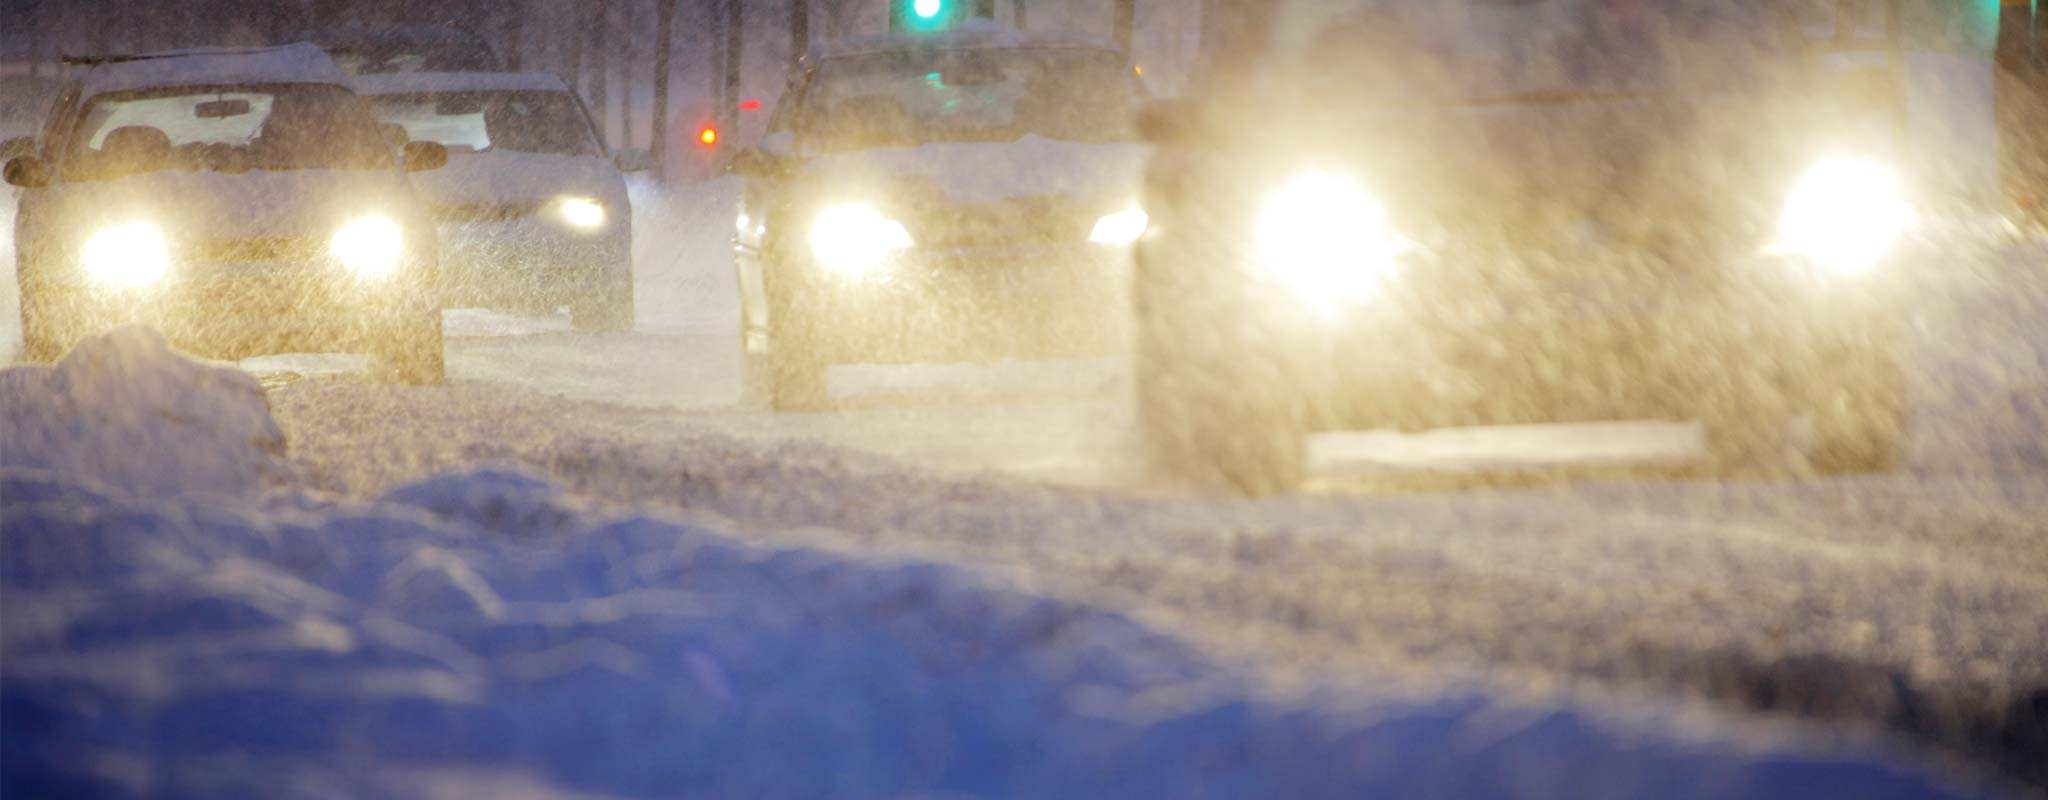 What You Need to Know About Road Conditions Right Now - Les Schwab